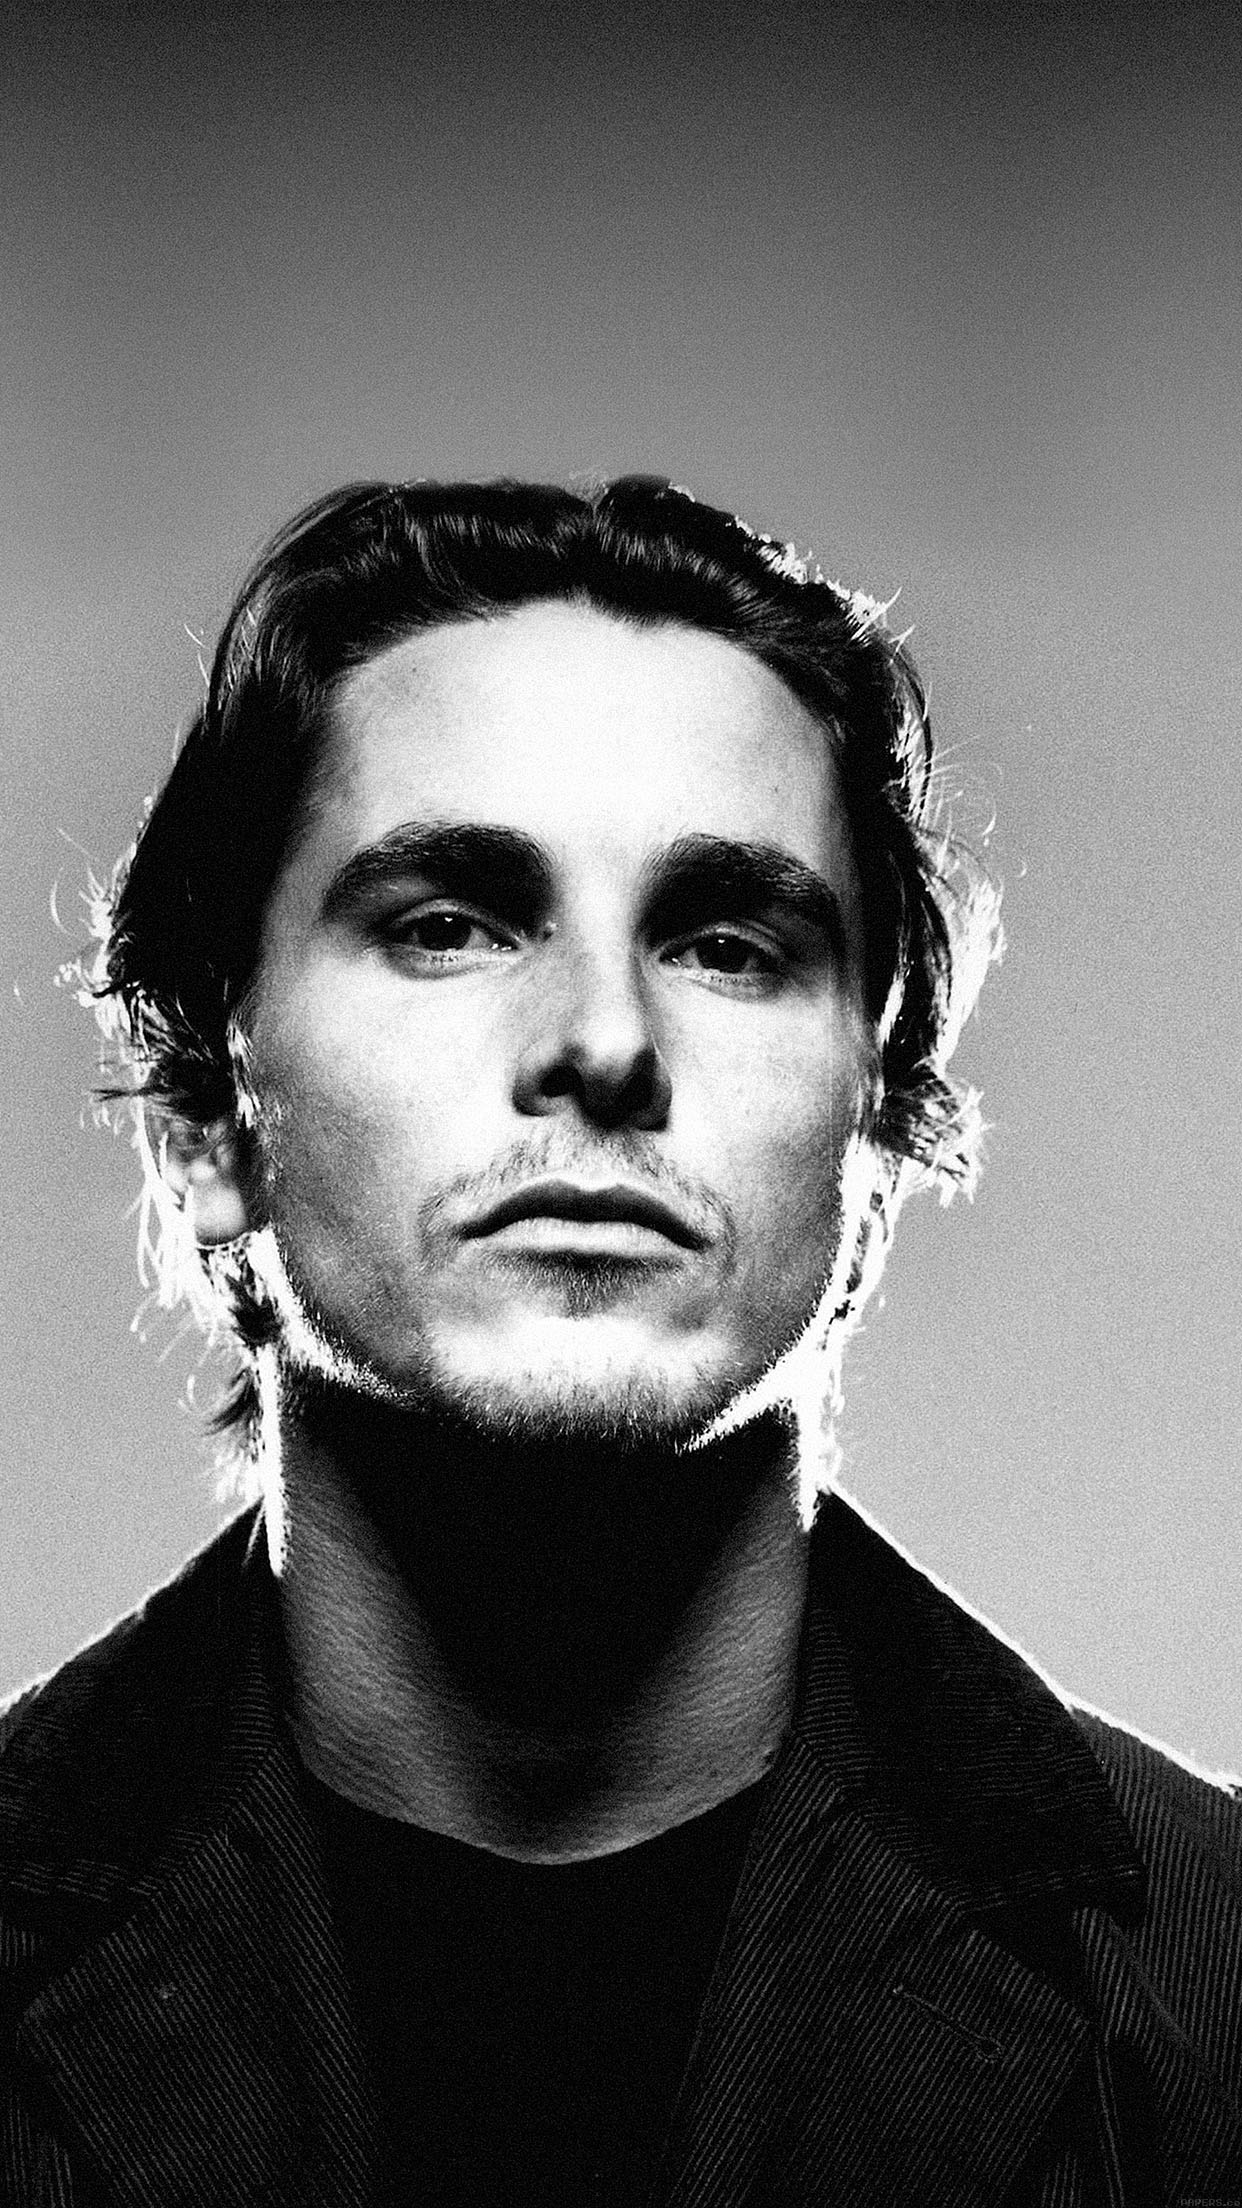 Iphone6papers Ha53 Wallpaper Christian Bale Film Face